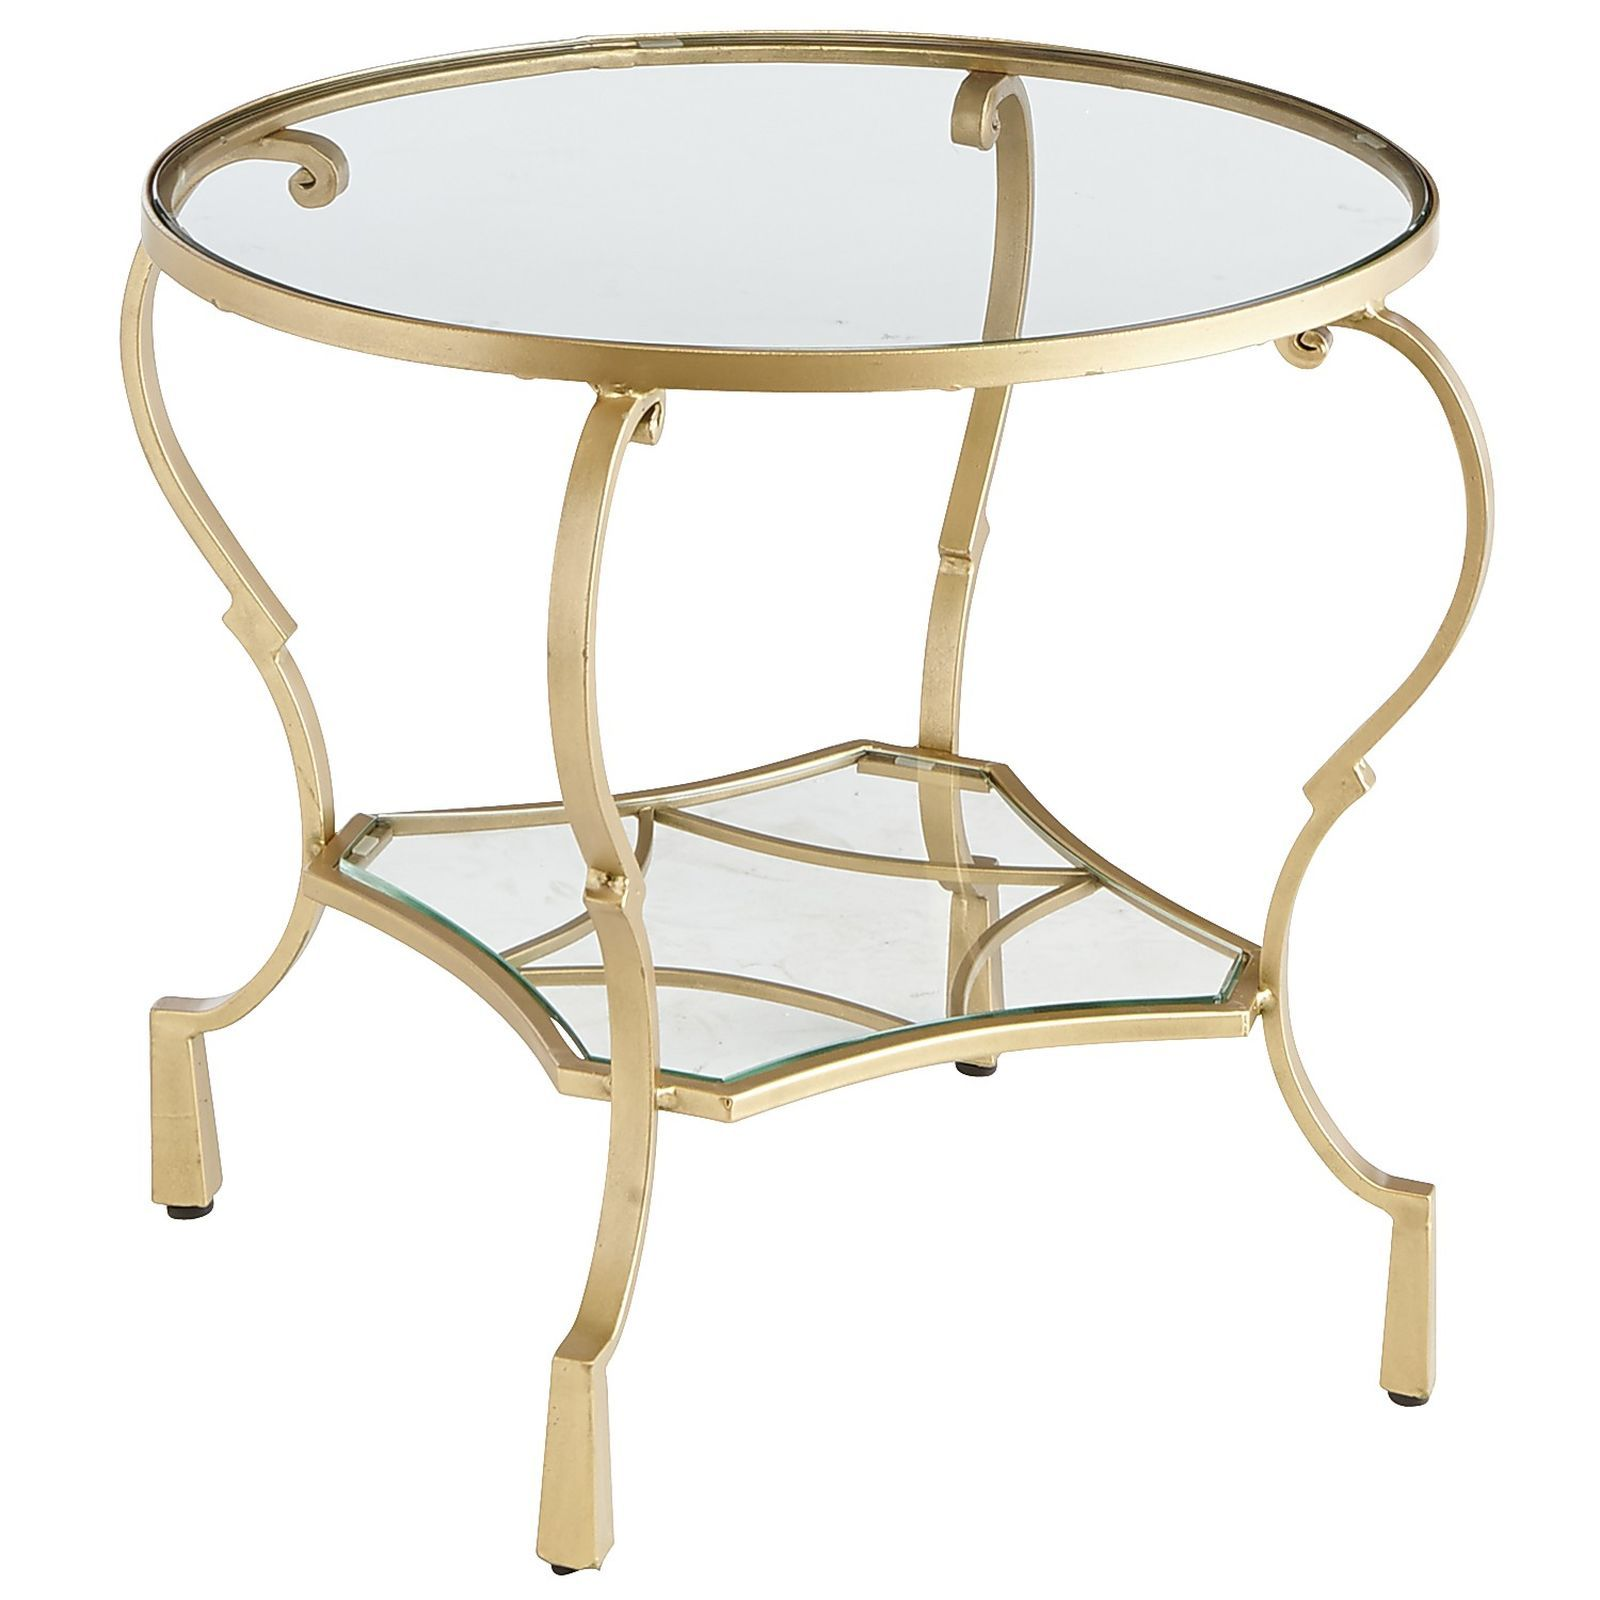 Chasca Glass Top Gold Round End Table | Iron, Shelves and Spaces